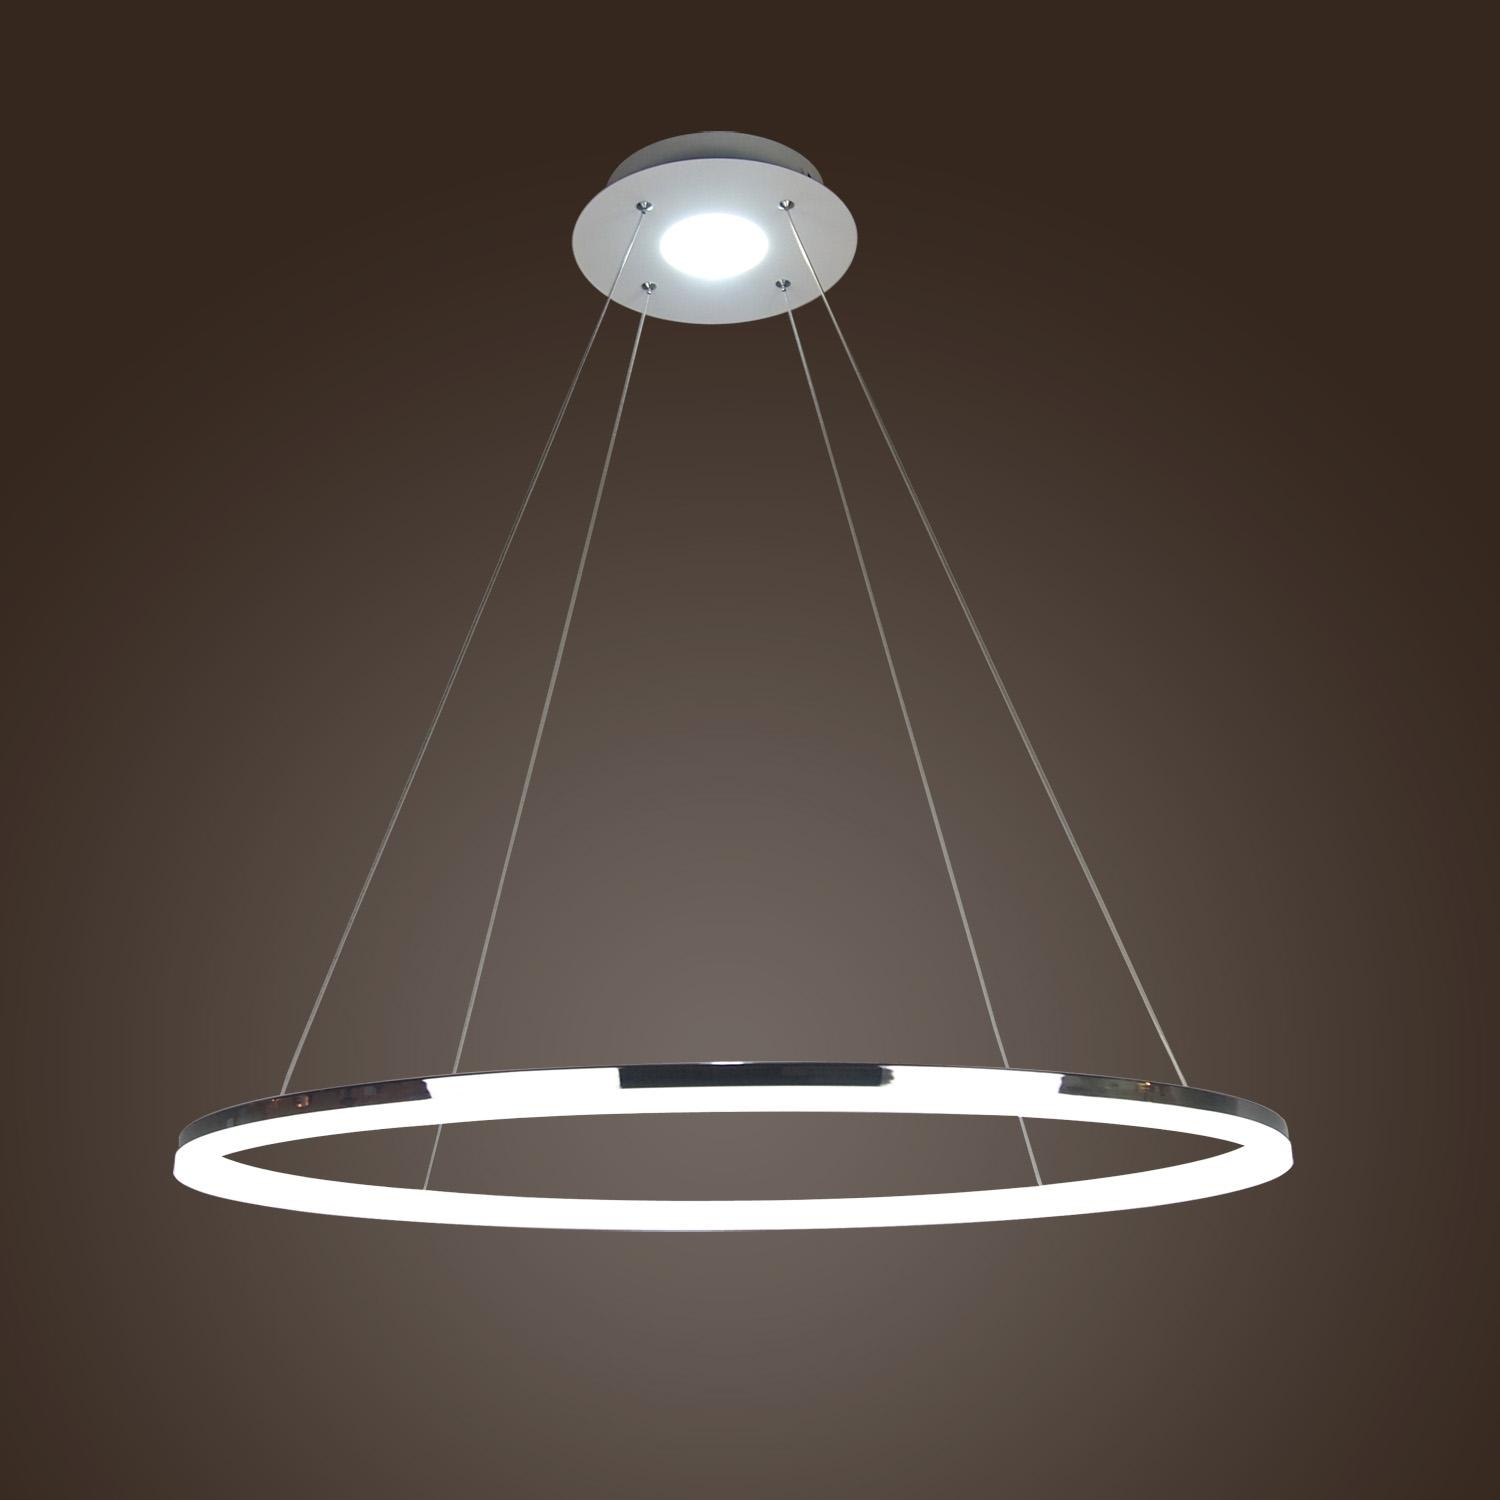 406080cm Modern Led Acrylic Round Pendant Chandelier Ceiling Intended For Modern Led Chandelier (View 3 of 15)